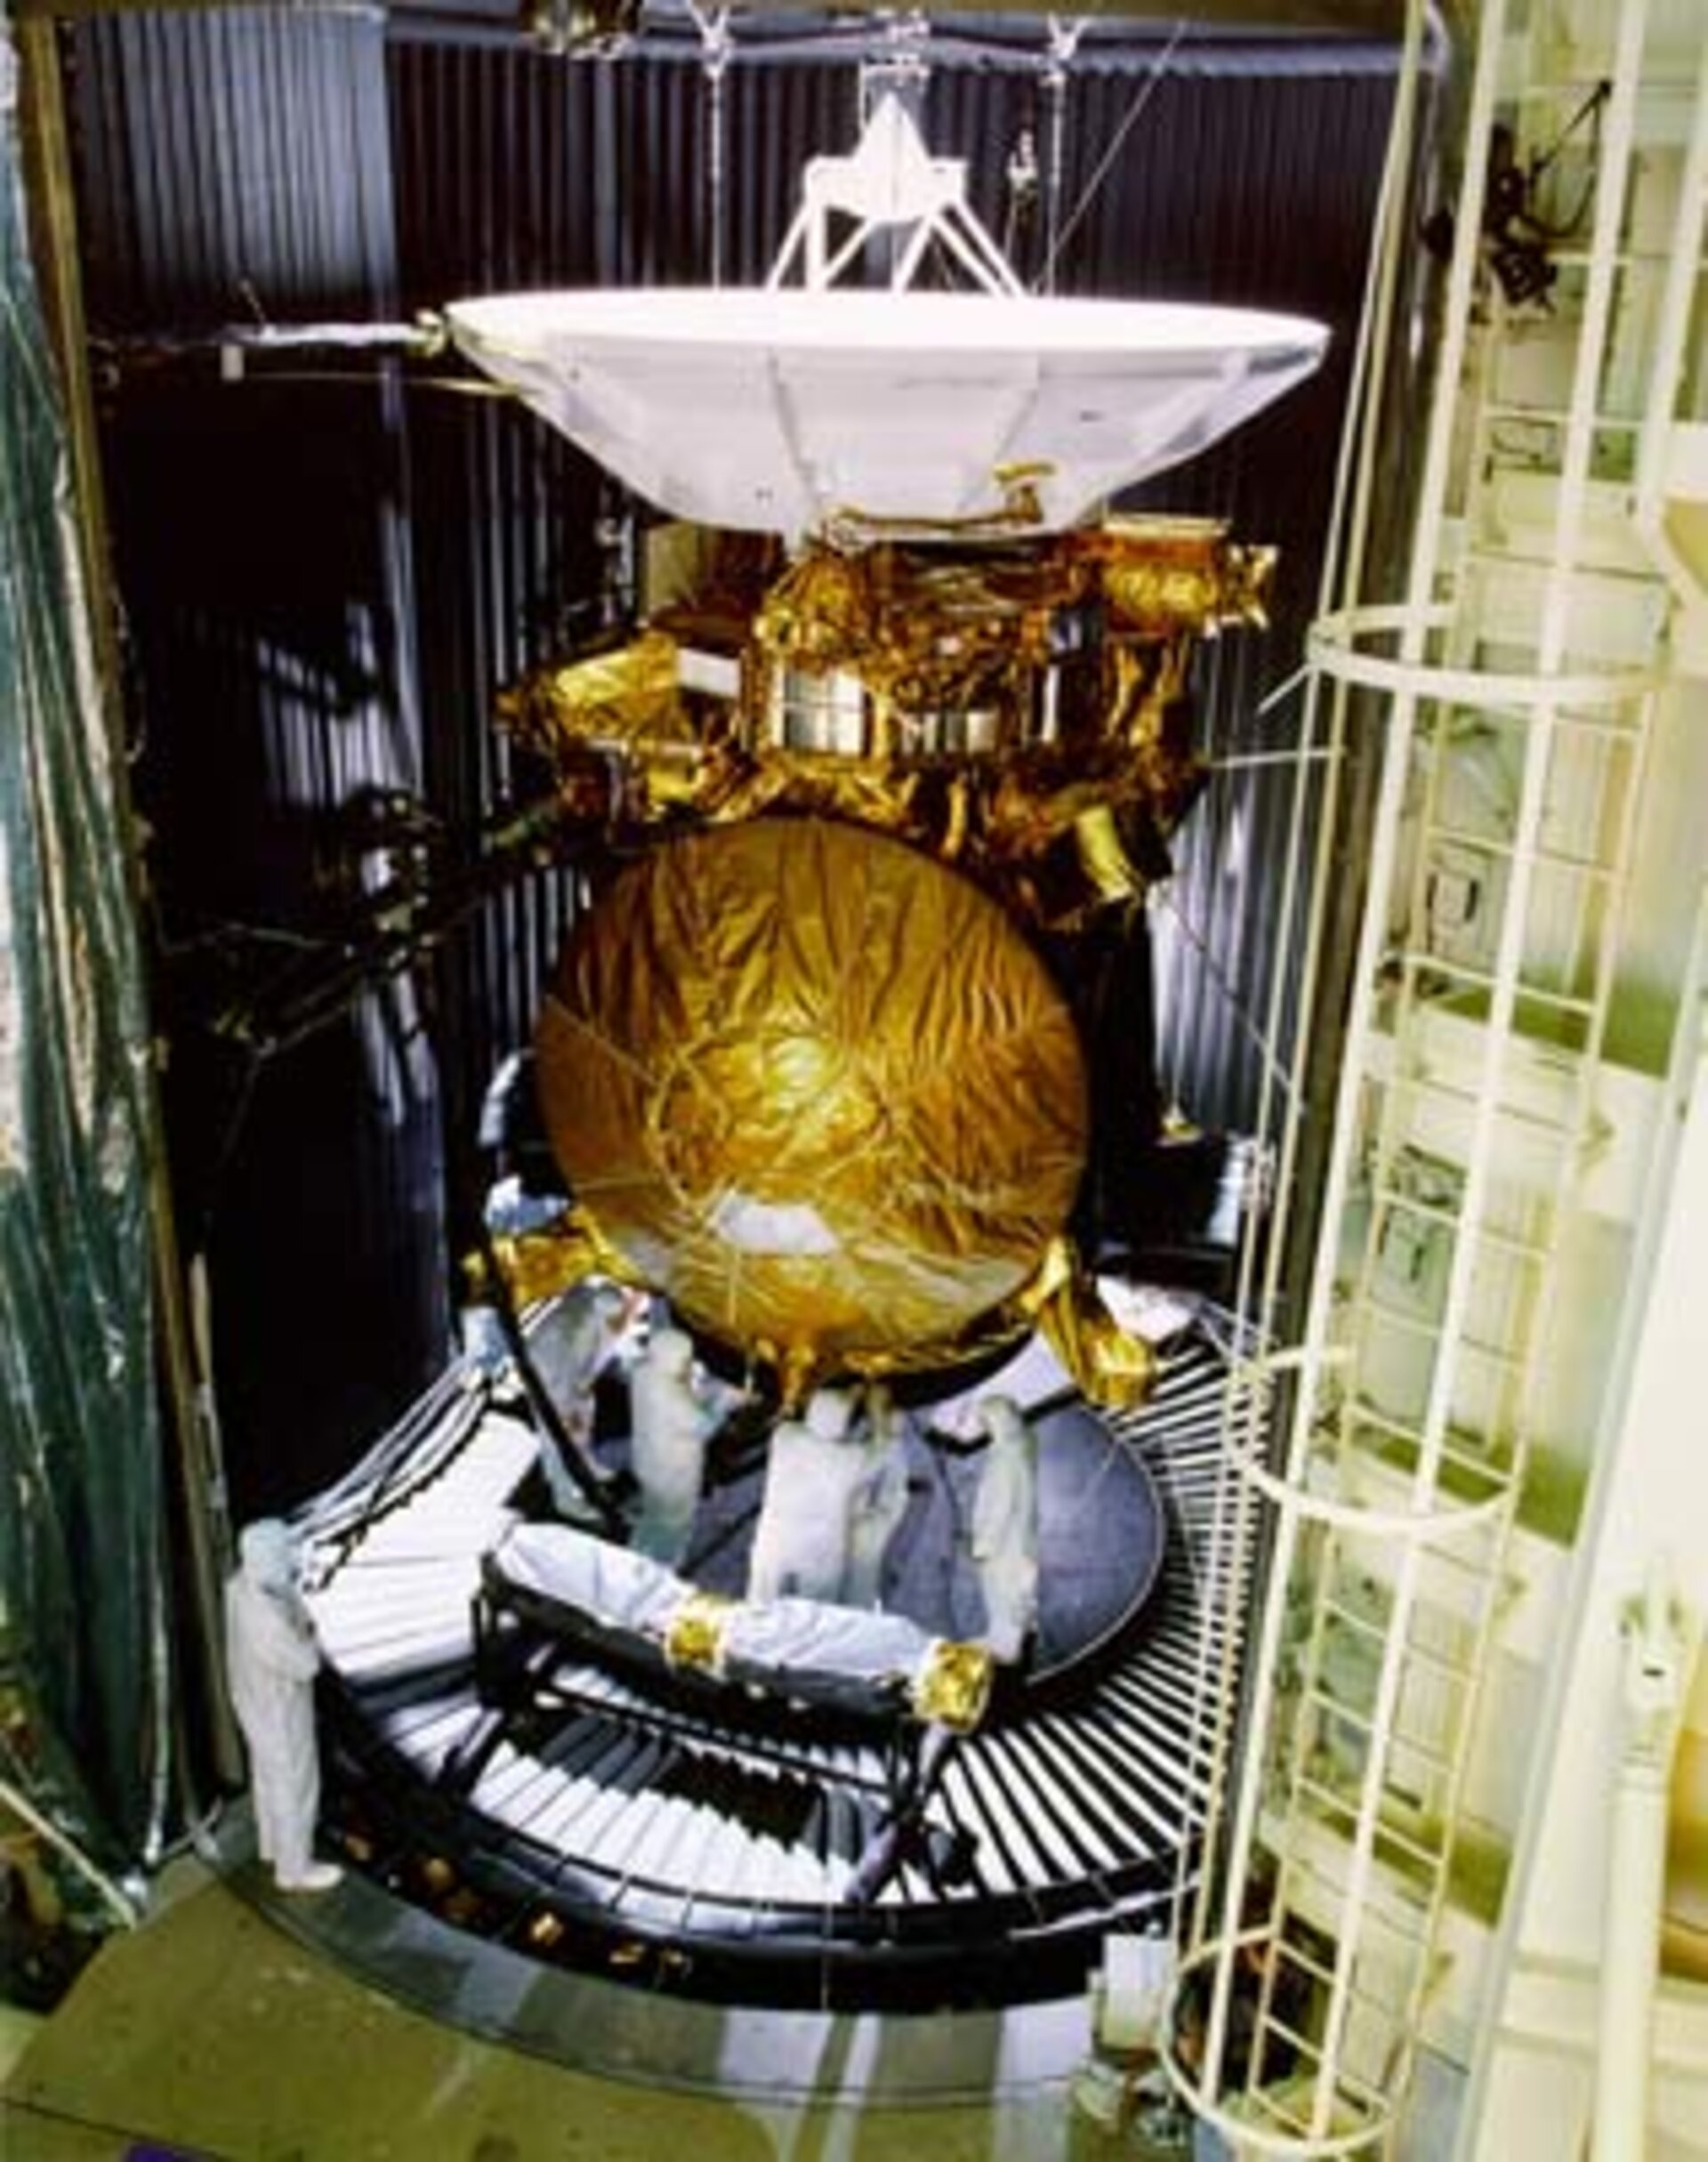 Technicians fit Huygens to Cassini before starting tests